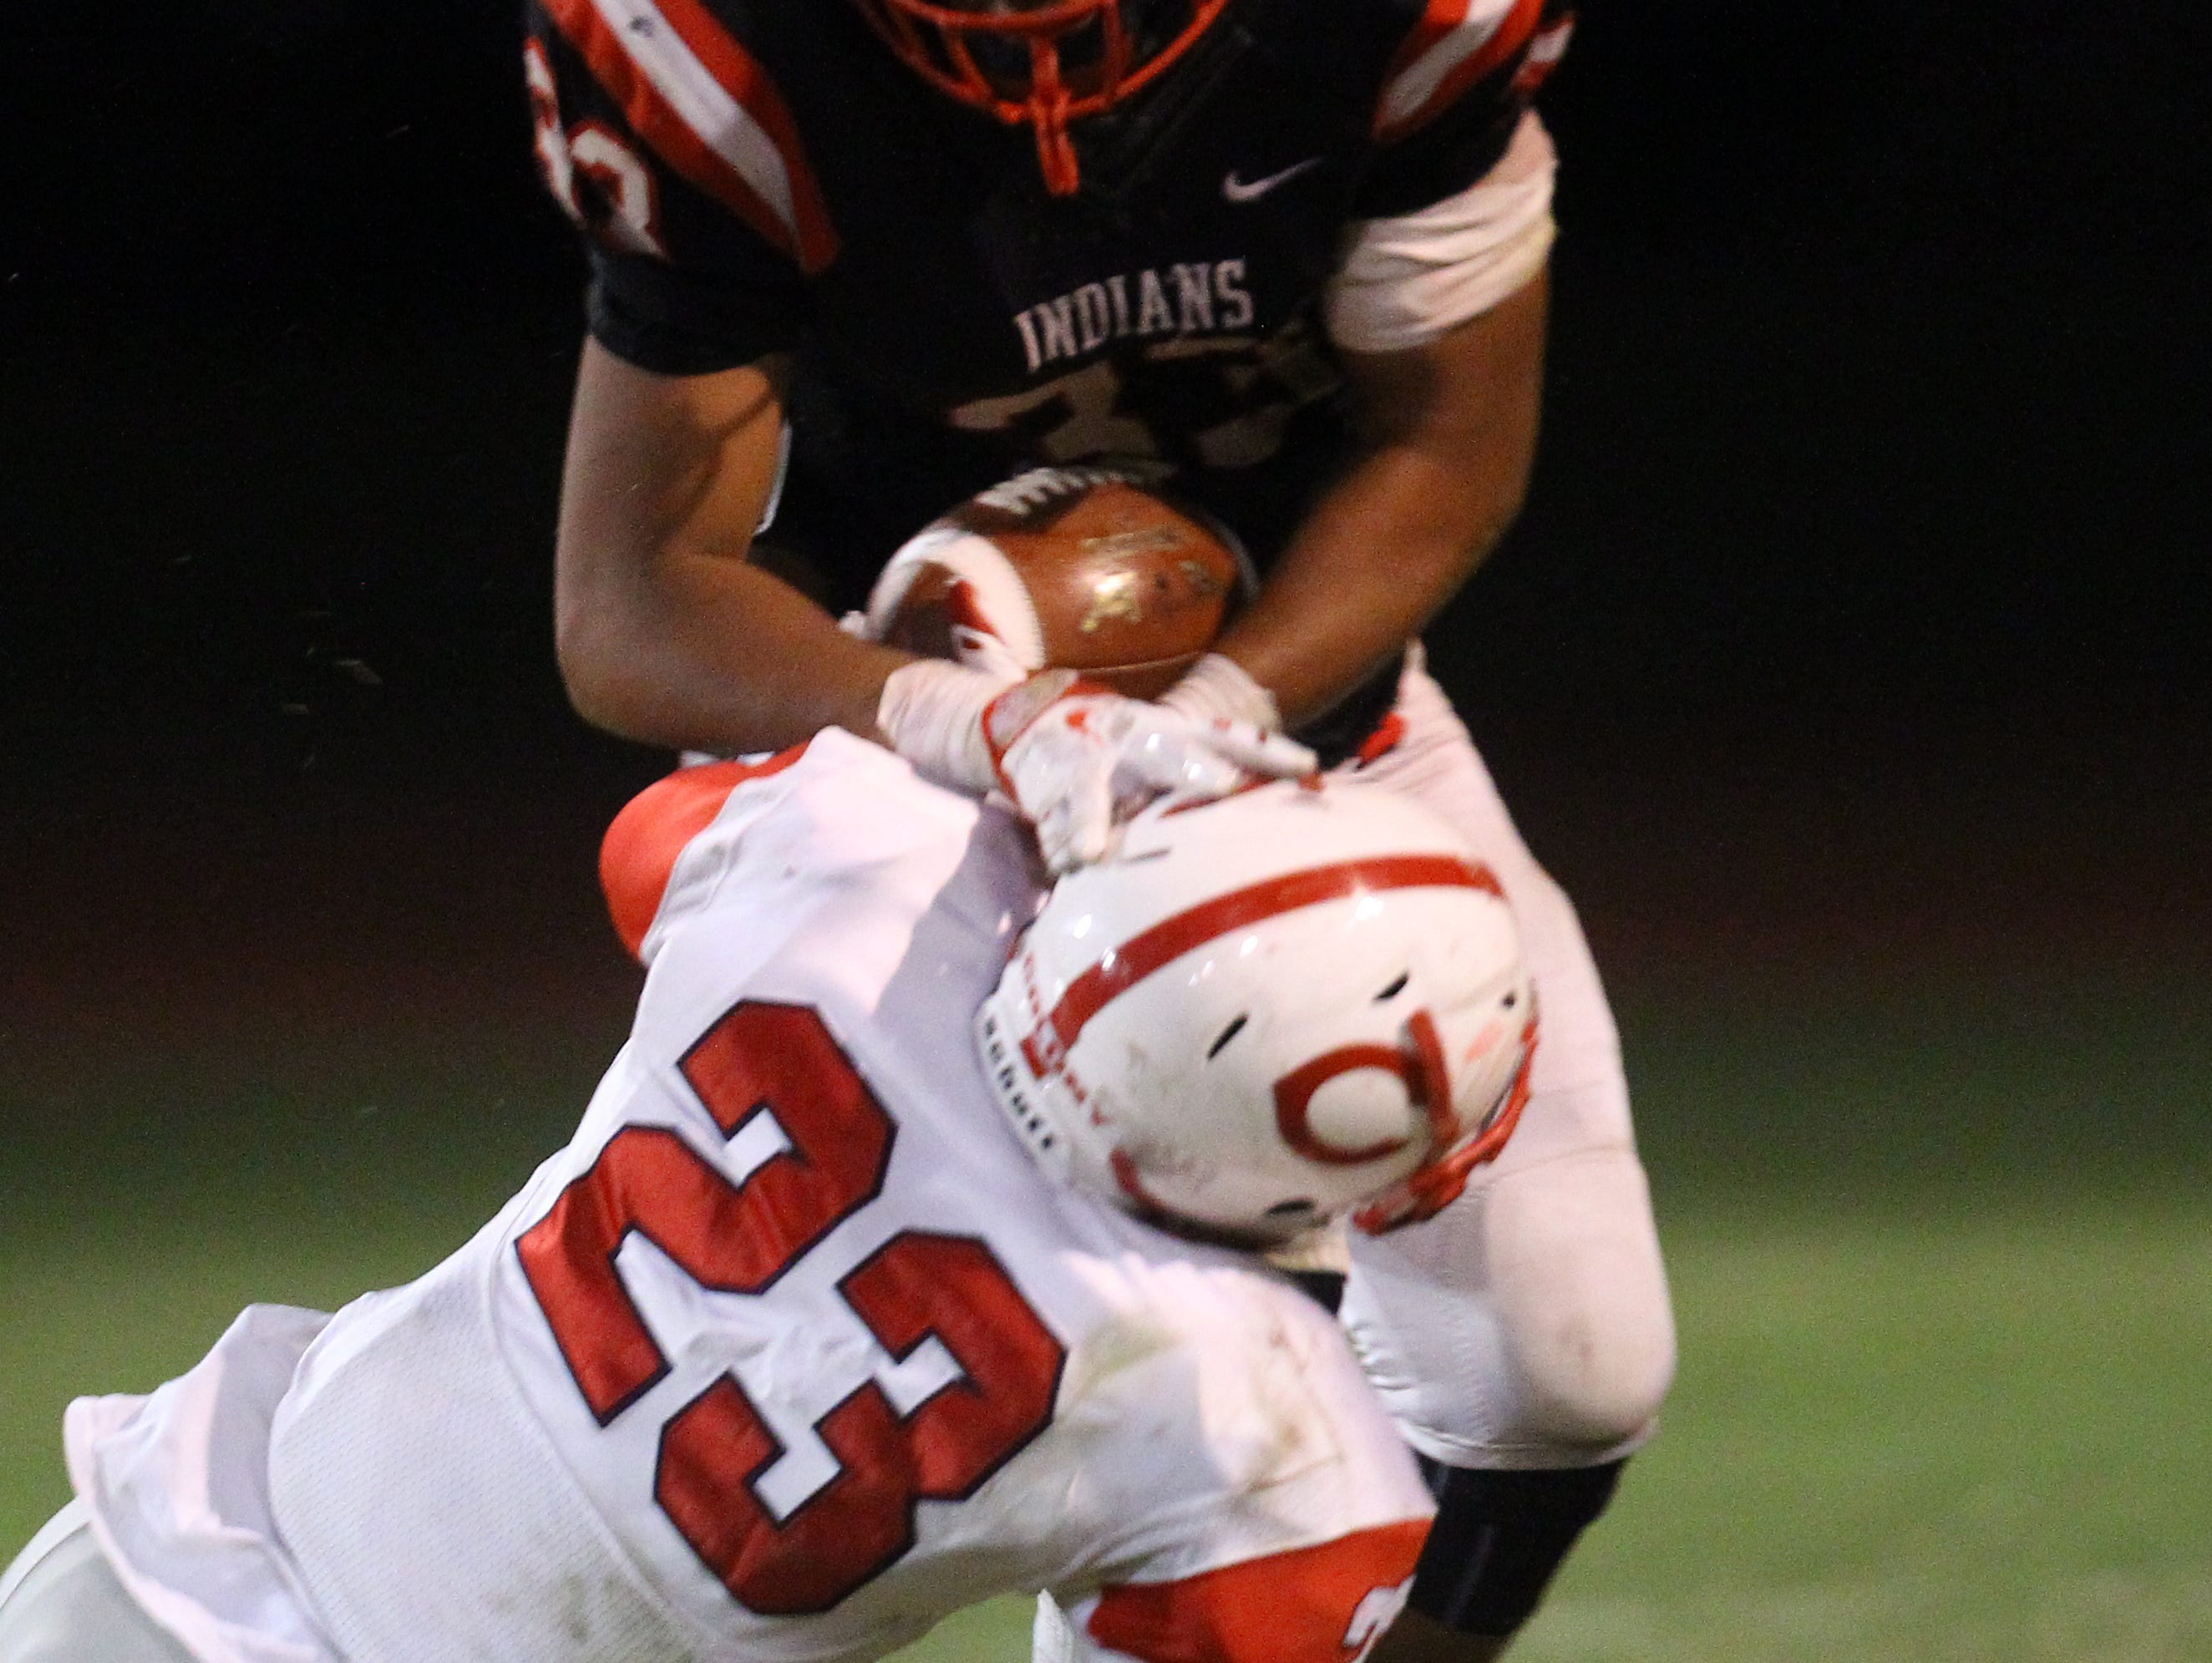 Palm Springs High School's Joshua Barlow gets tackled during a run against Colony during their CIF post-season game against Colony on November 11, 2016.